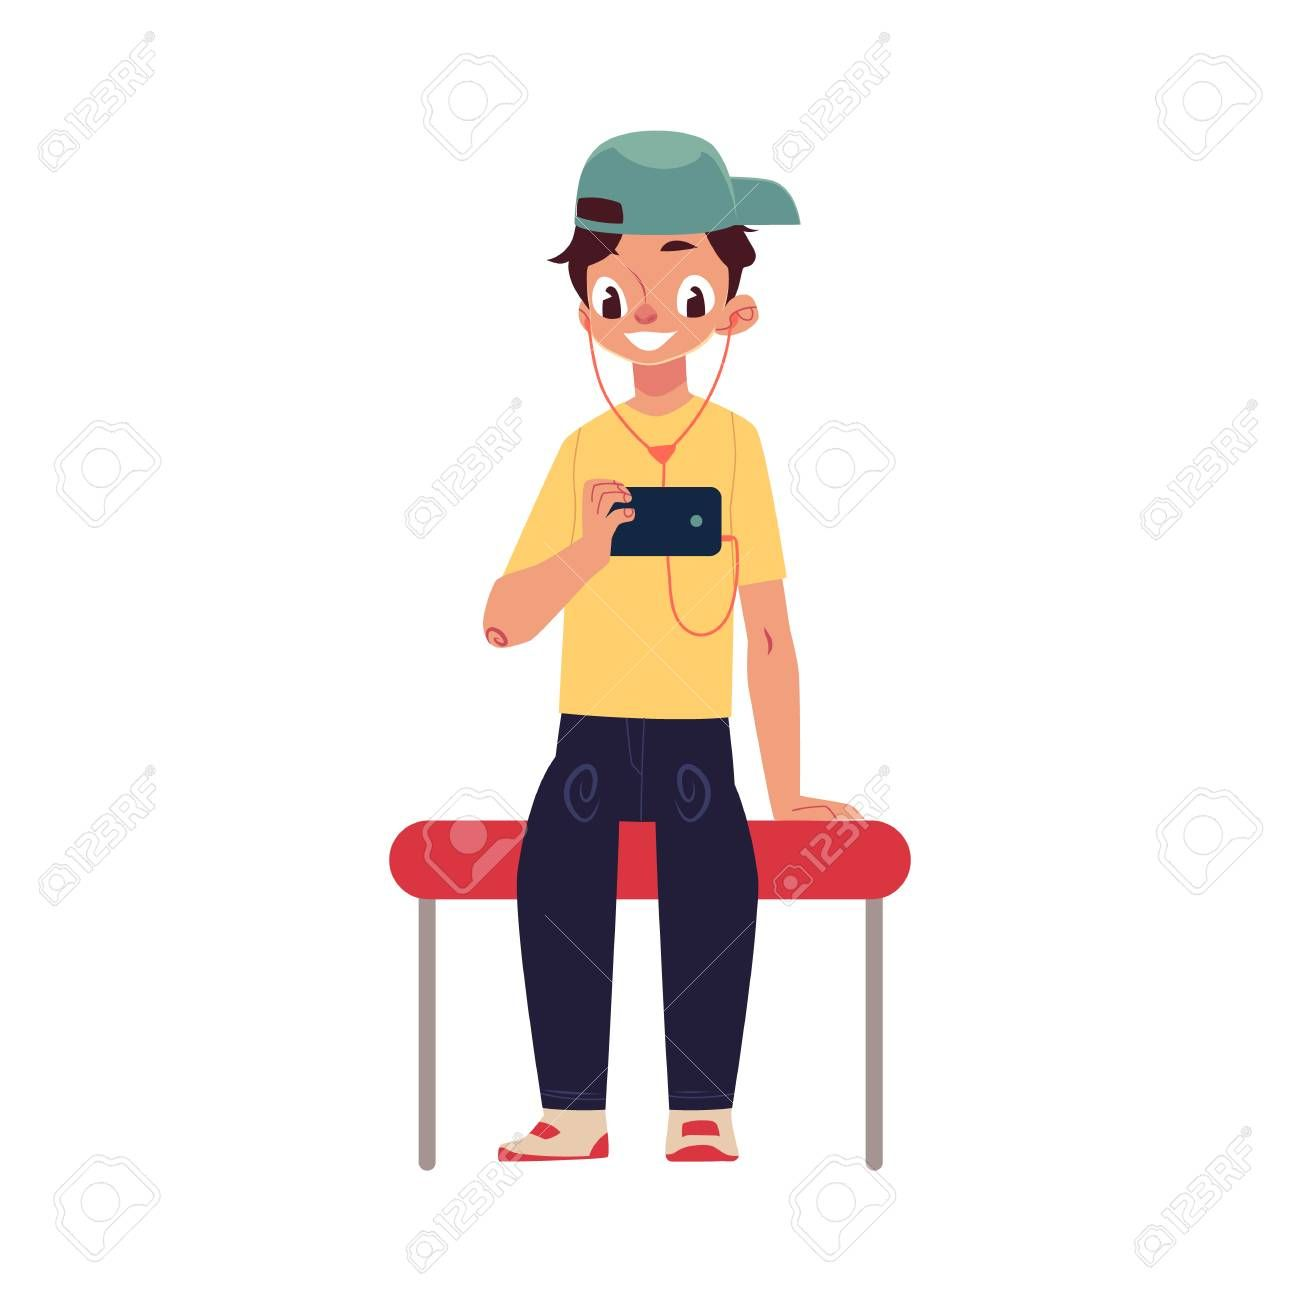 Boy Schoolboy Teenager Travelling By Subway Sitting Using Phone Cartoon Vector Illustration Isolated On White Back School Boy Website Template Design Boys